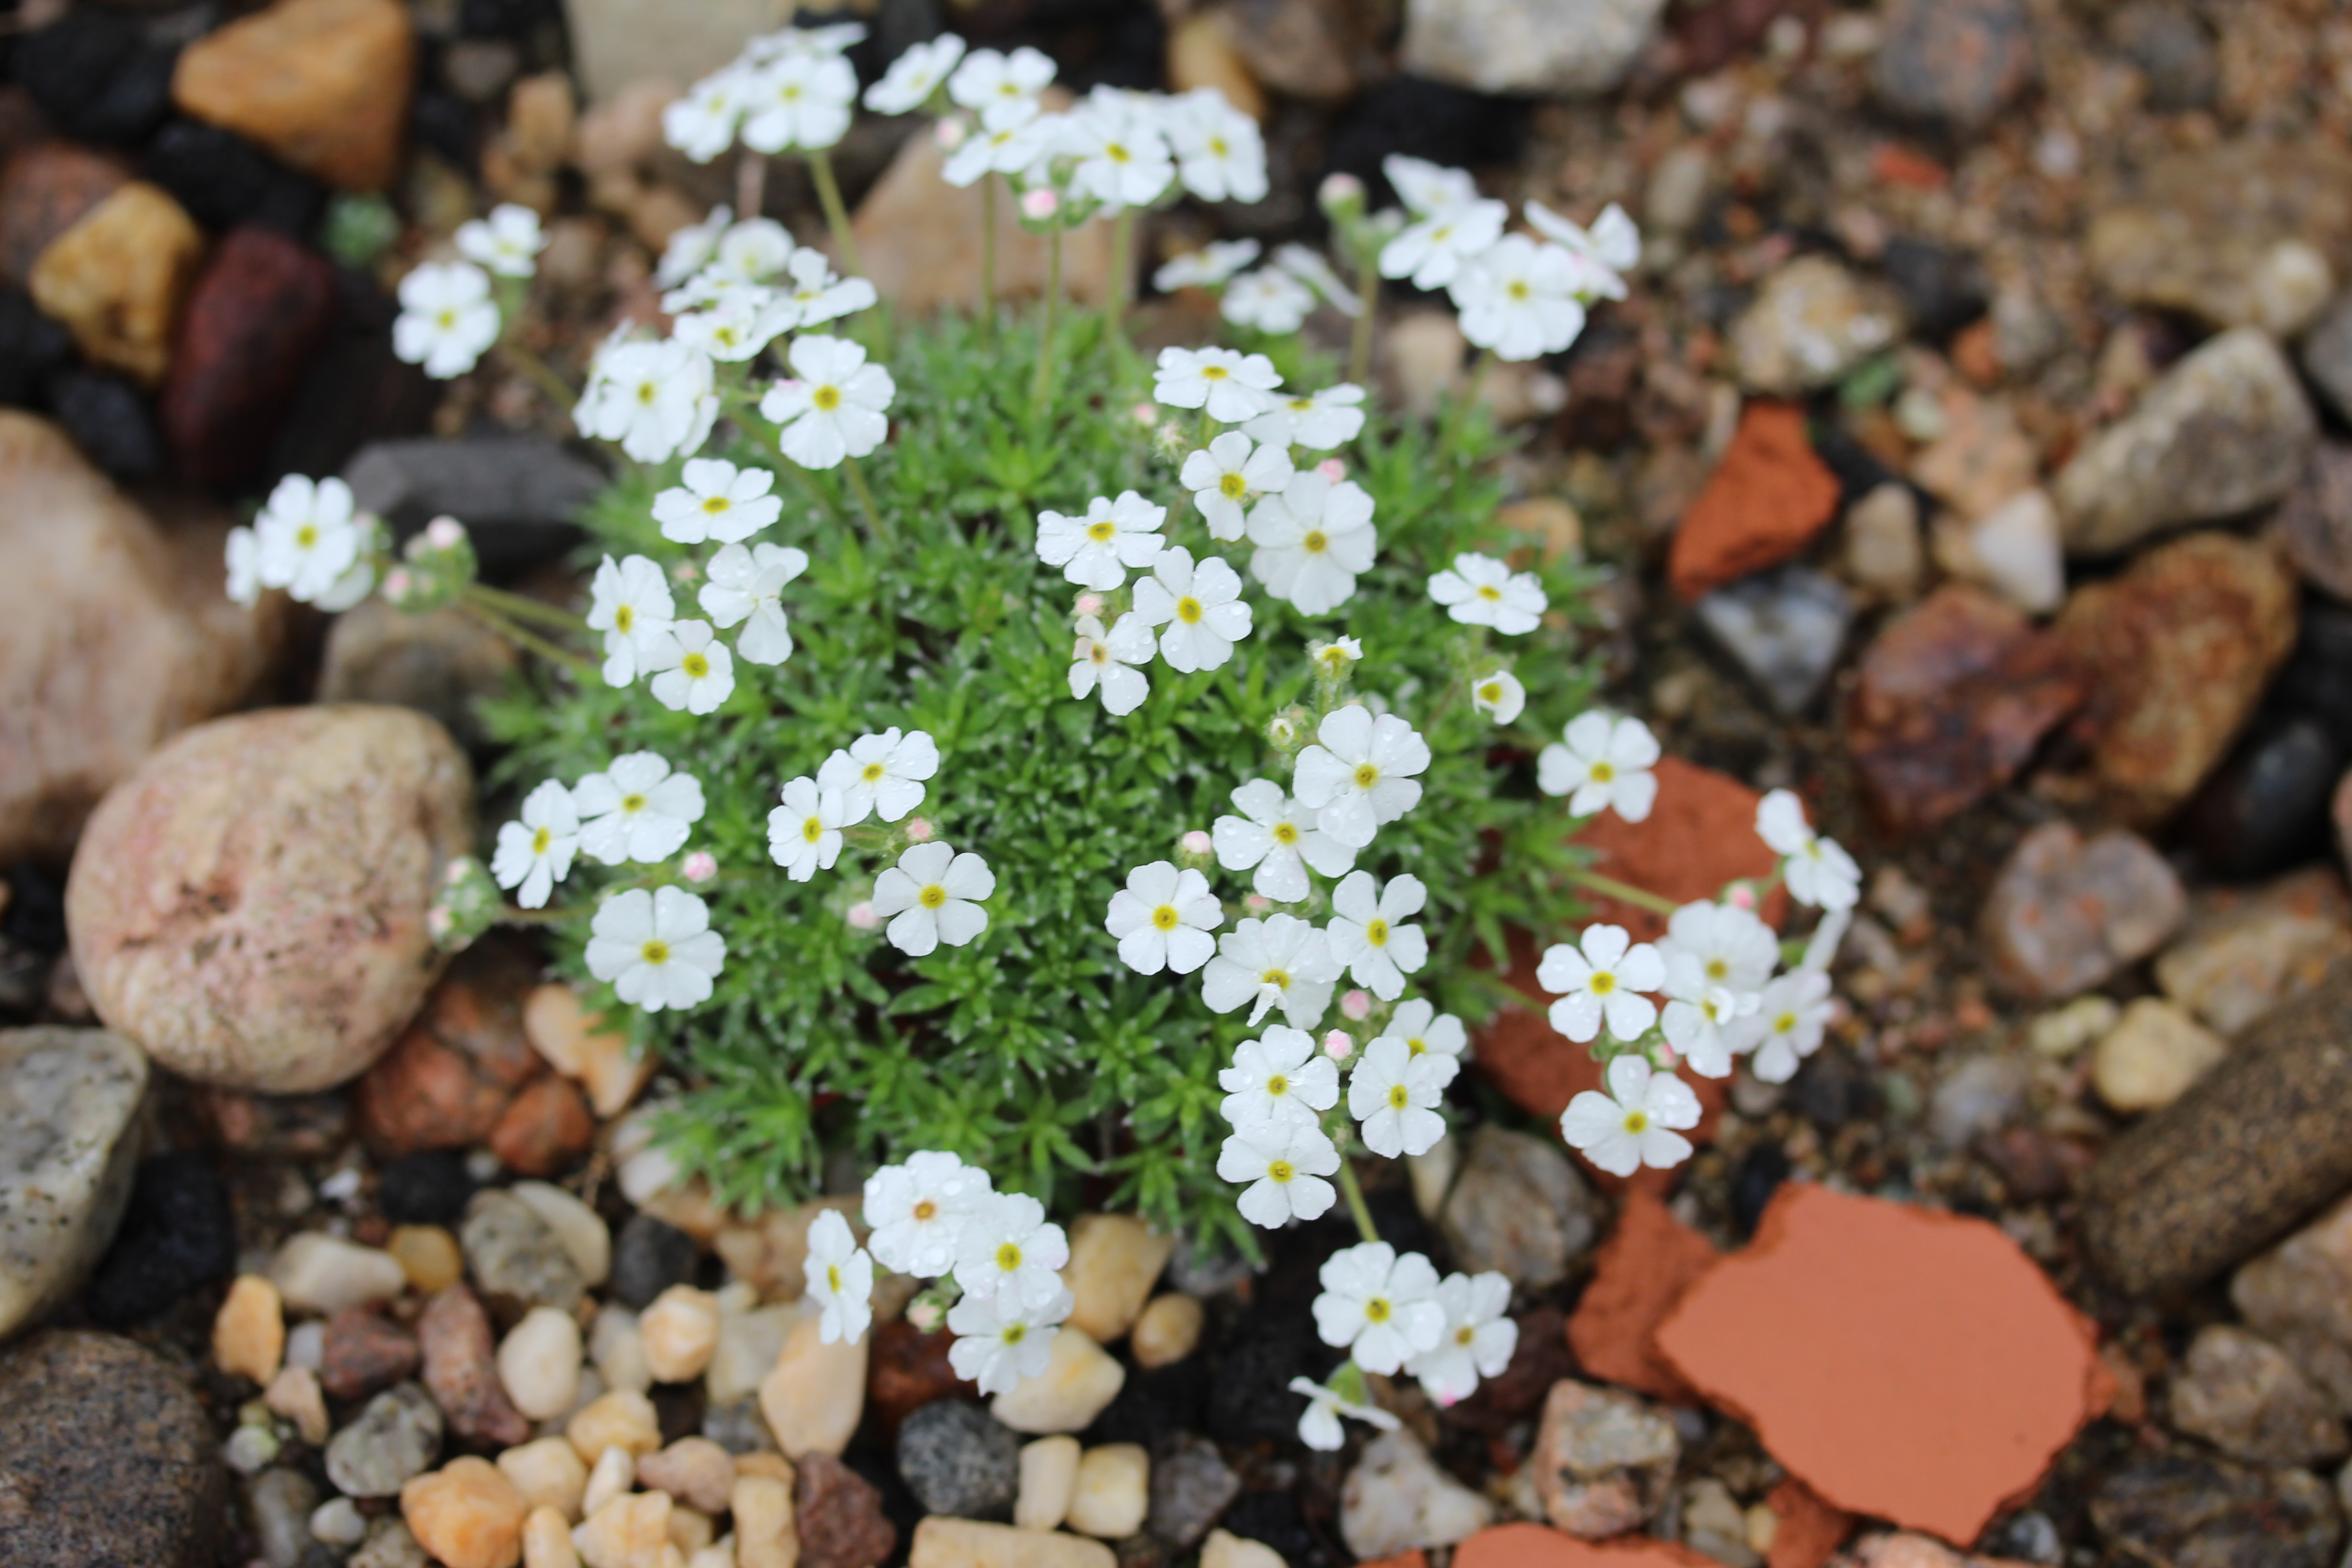 Androsace_pubescens x helvetica (3)